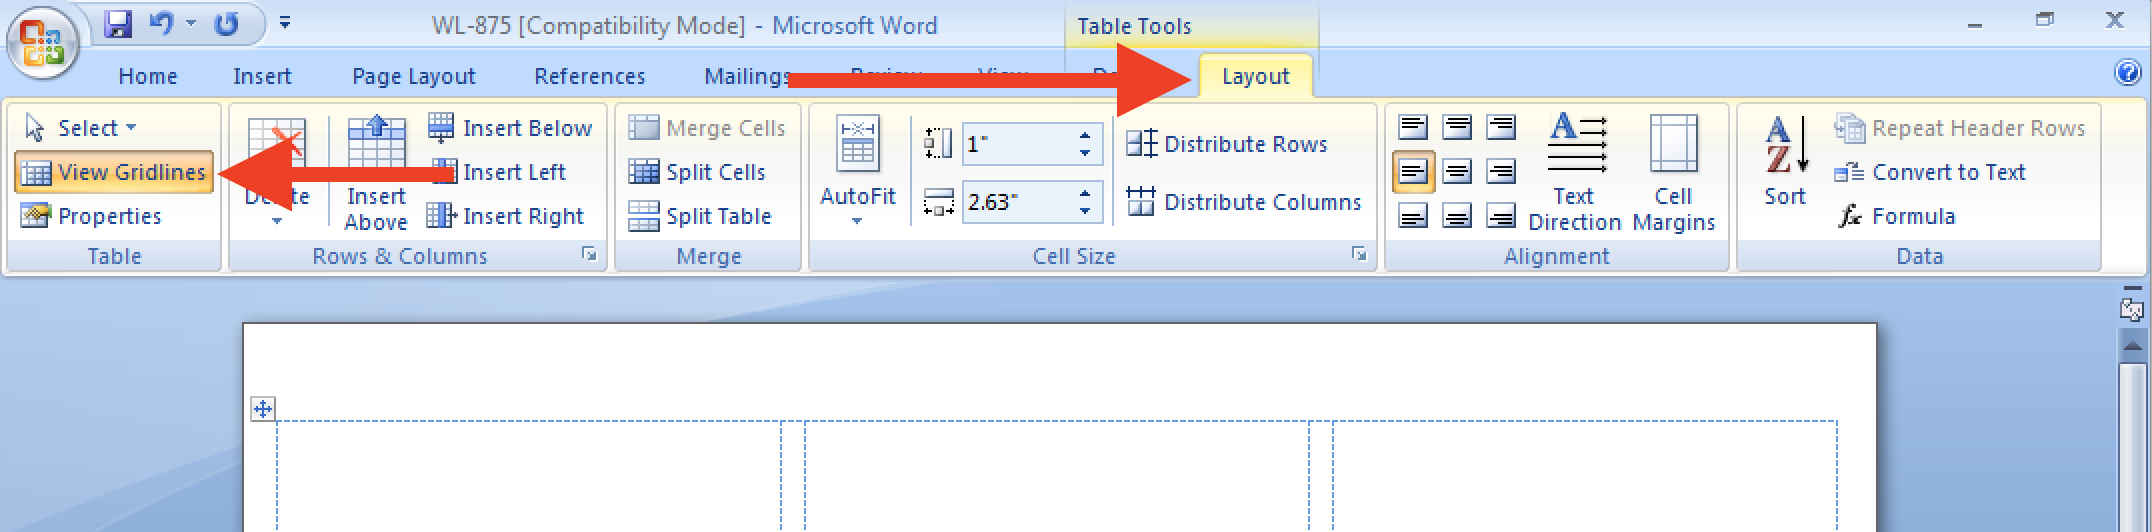 Insert And Resize Imagestext Into Label Cells In A Word Template